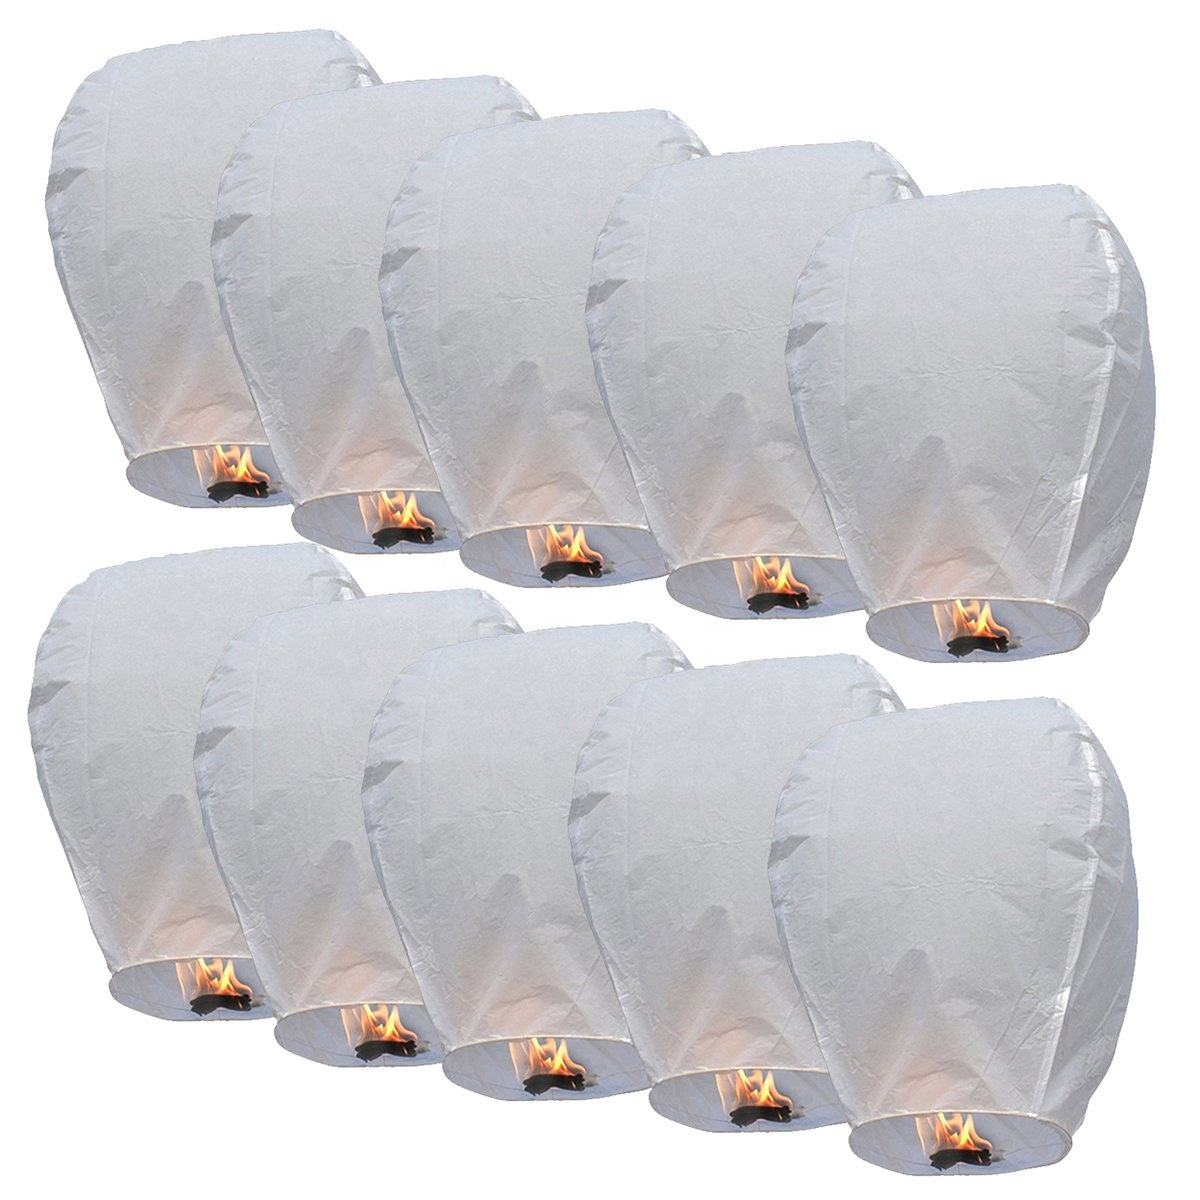 Boomwow ECO Friendly 100% Biodegradable Traditional Flying Sky Lanterns Wishing Lamp for Christmas New Year